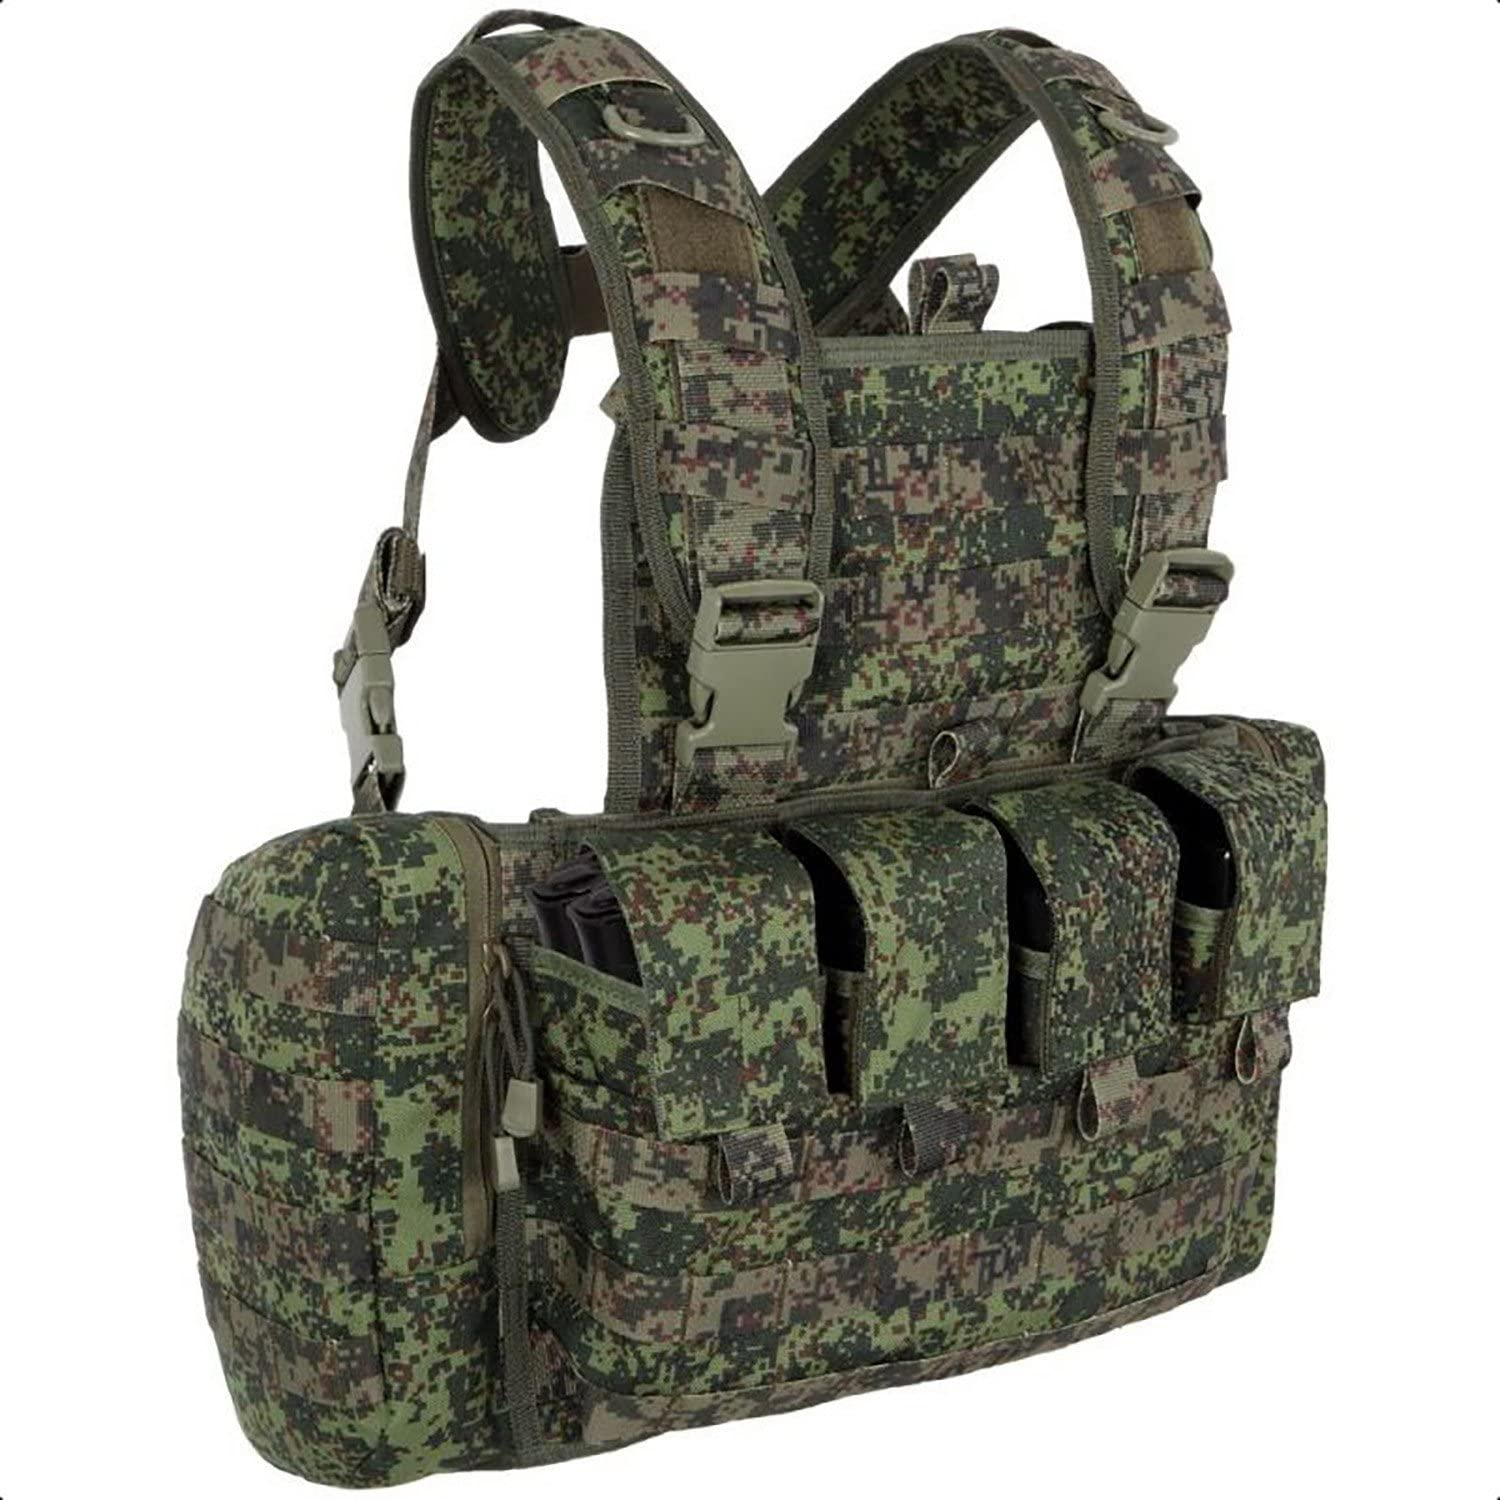 Image of a tactical chest rig in military colors, buckle closures and multiple pockets seen on front.